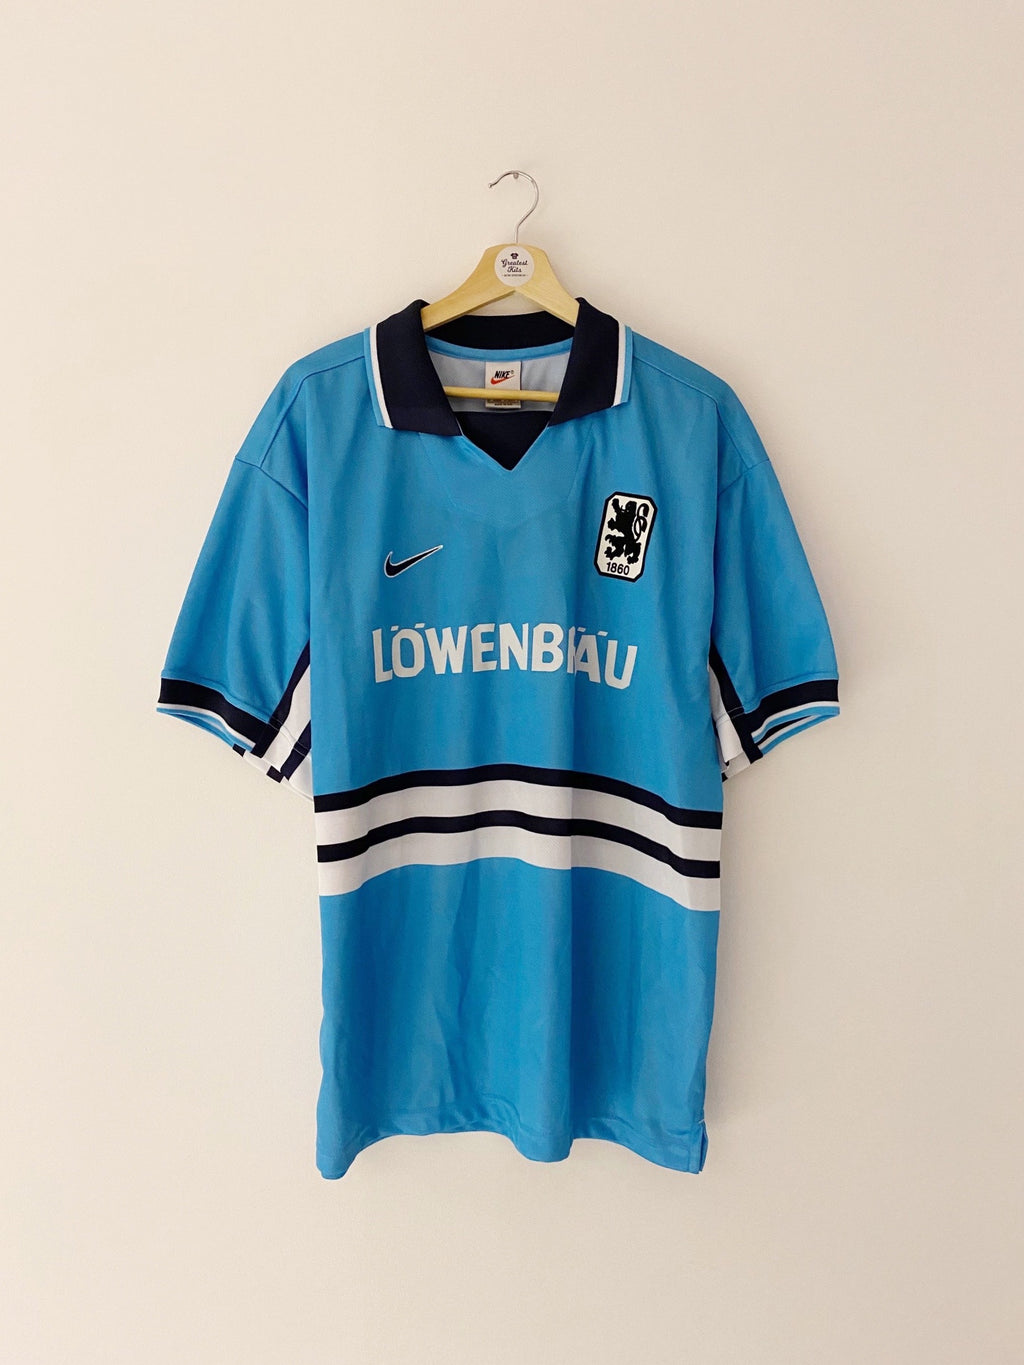 1997/98 1860 Munich *Player Issue* Home Shirt (XL) 9.5/10